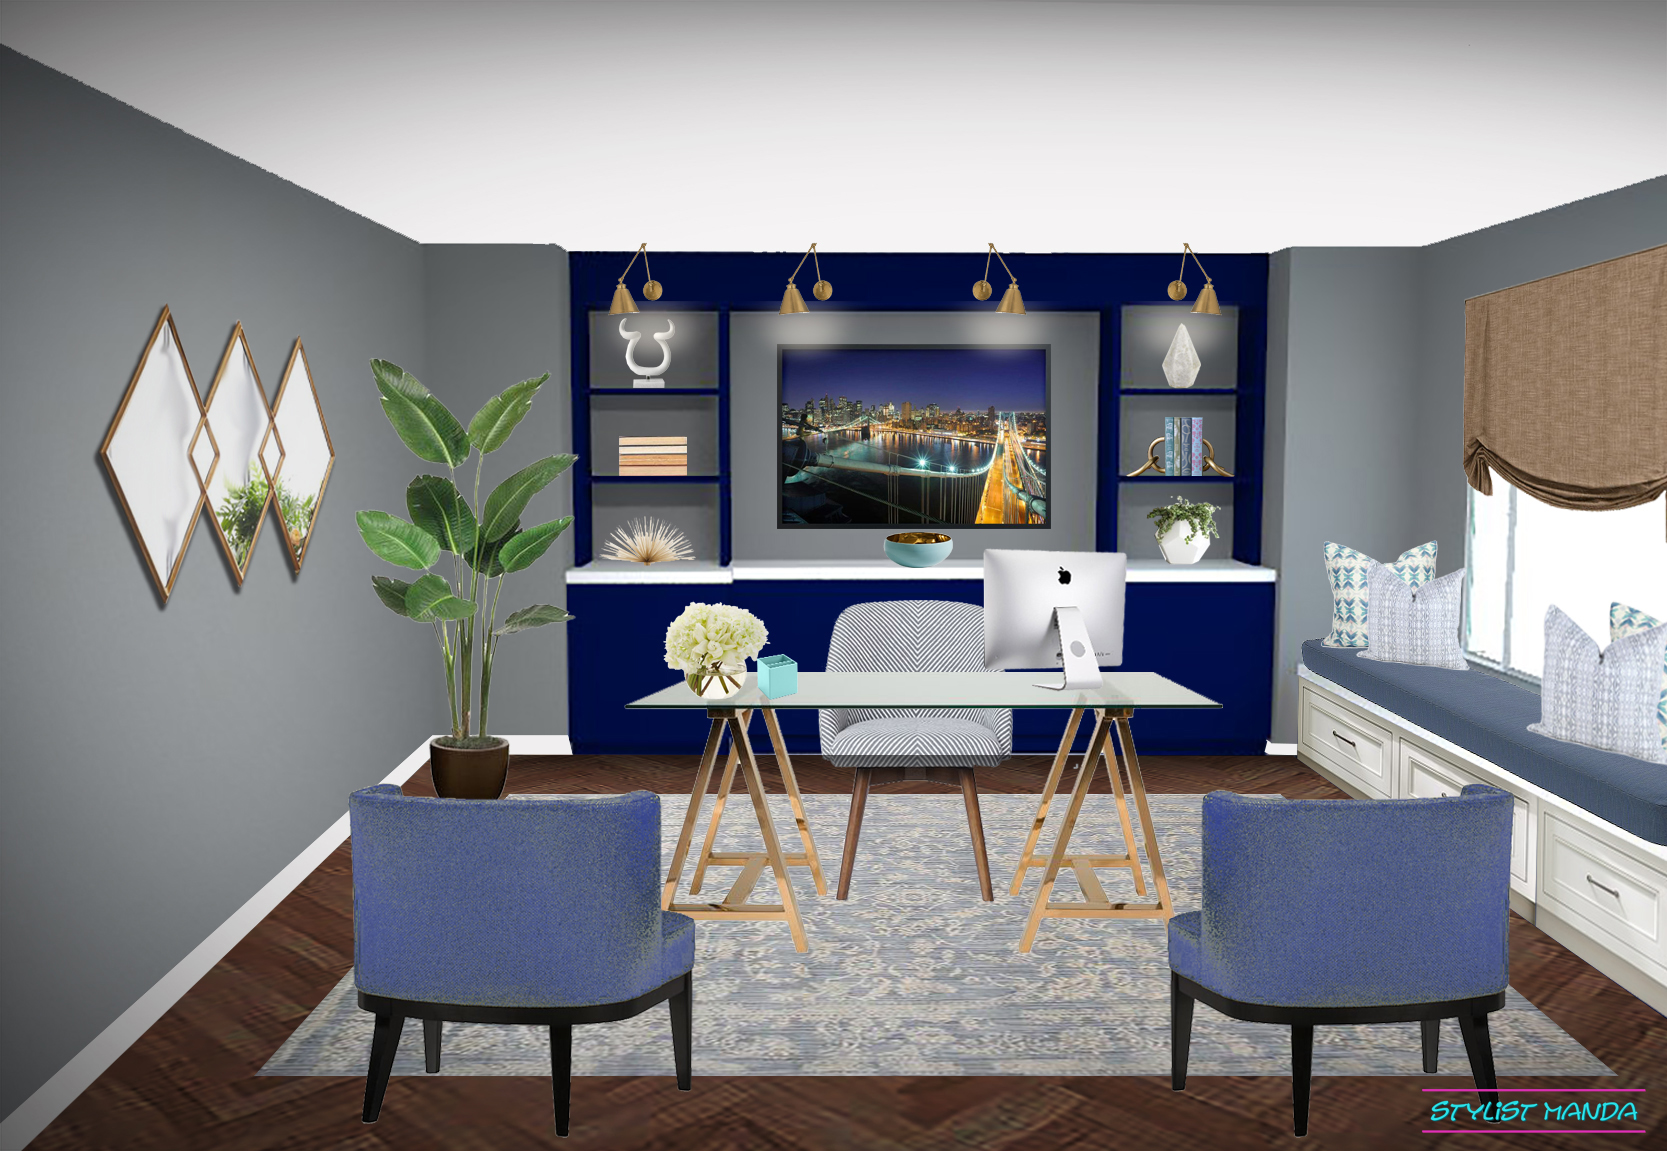 Home office interior design inspiration with a custom credenza to display art and a window seat #edesign